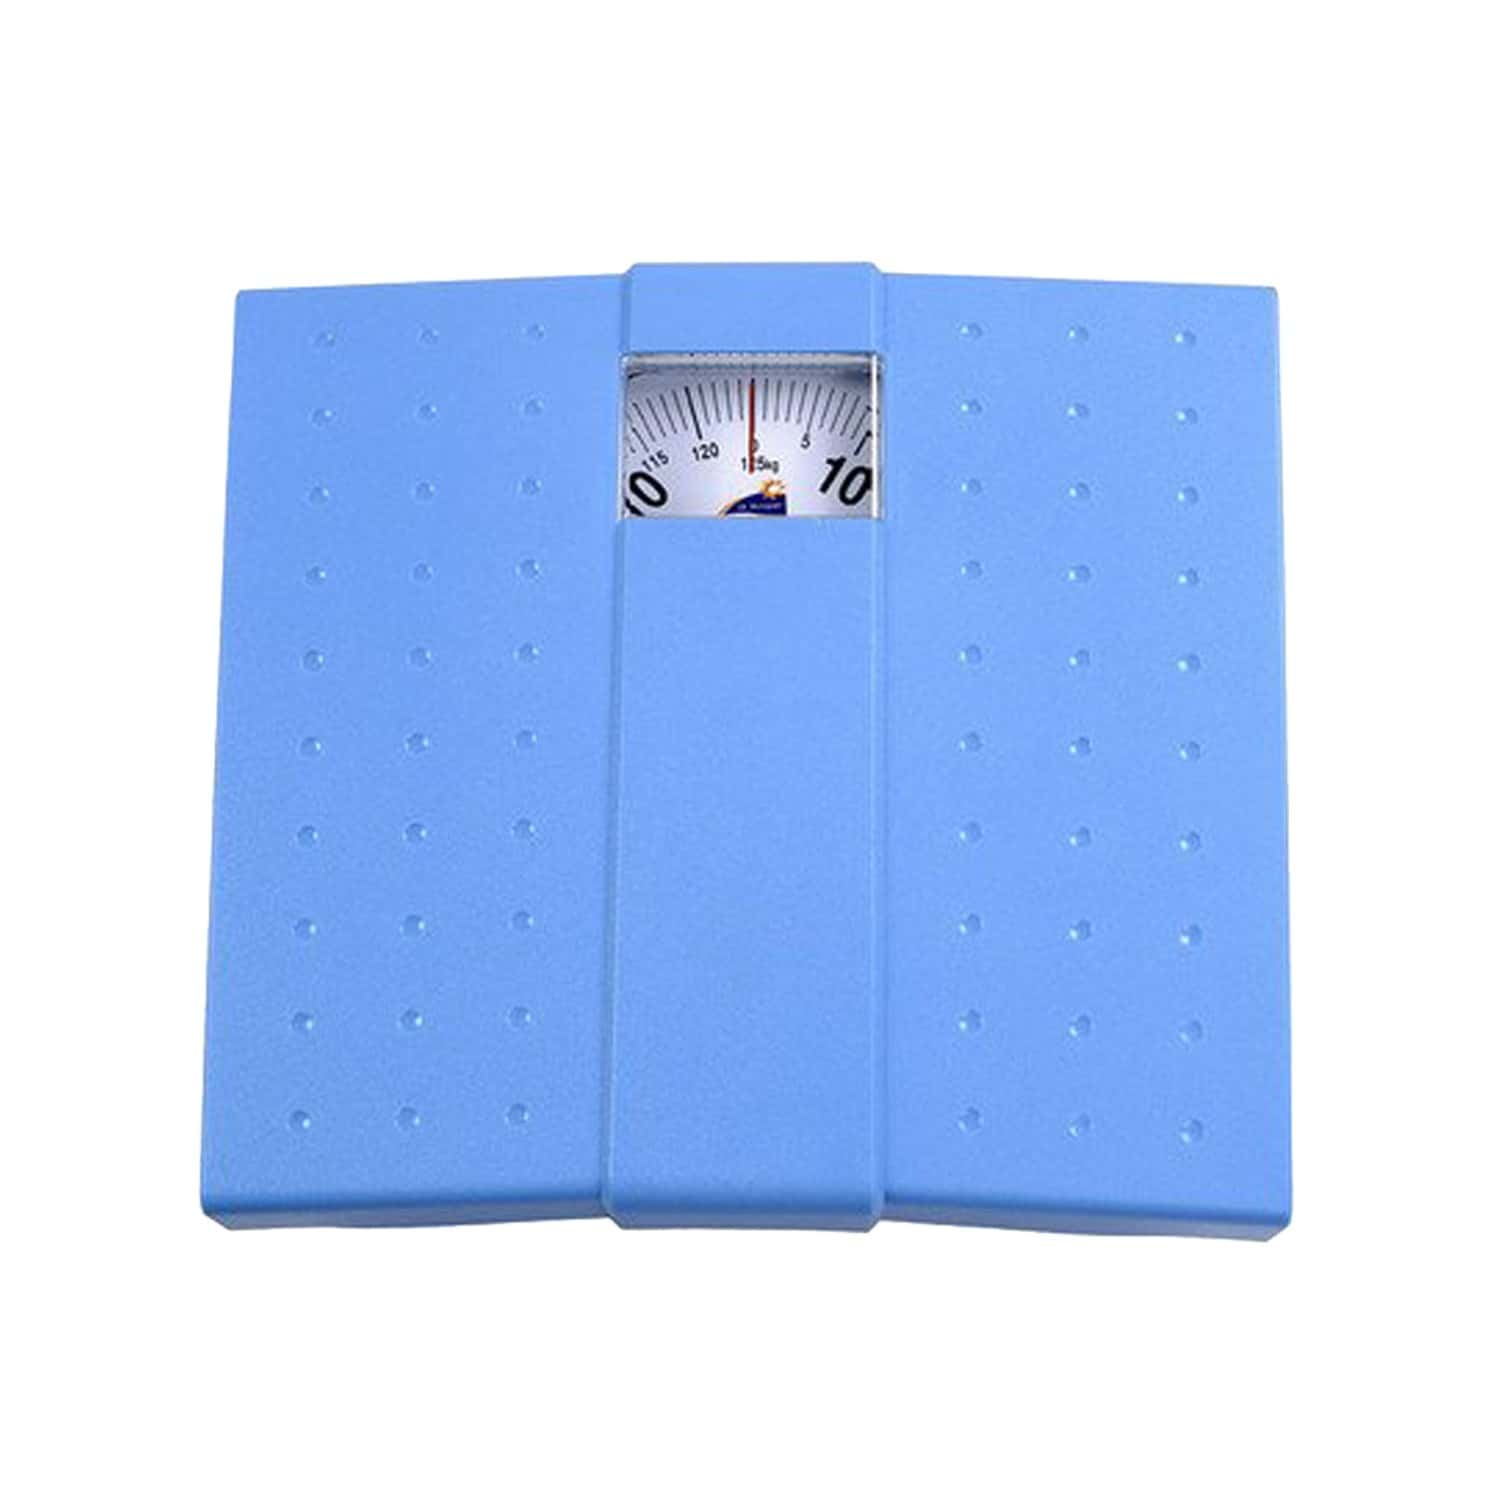 Dr Morepen Manual Weighing Scale - Ms 02 Blue/white 1 Piece